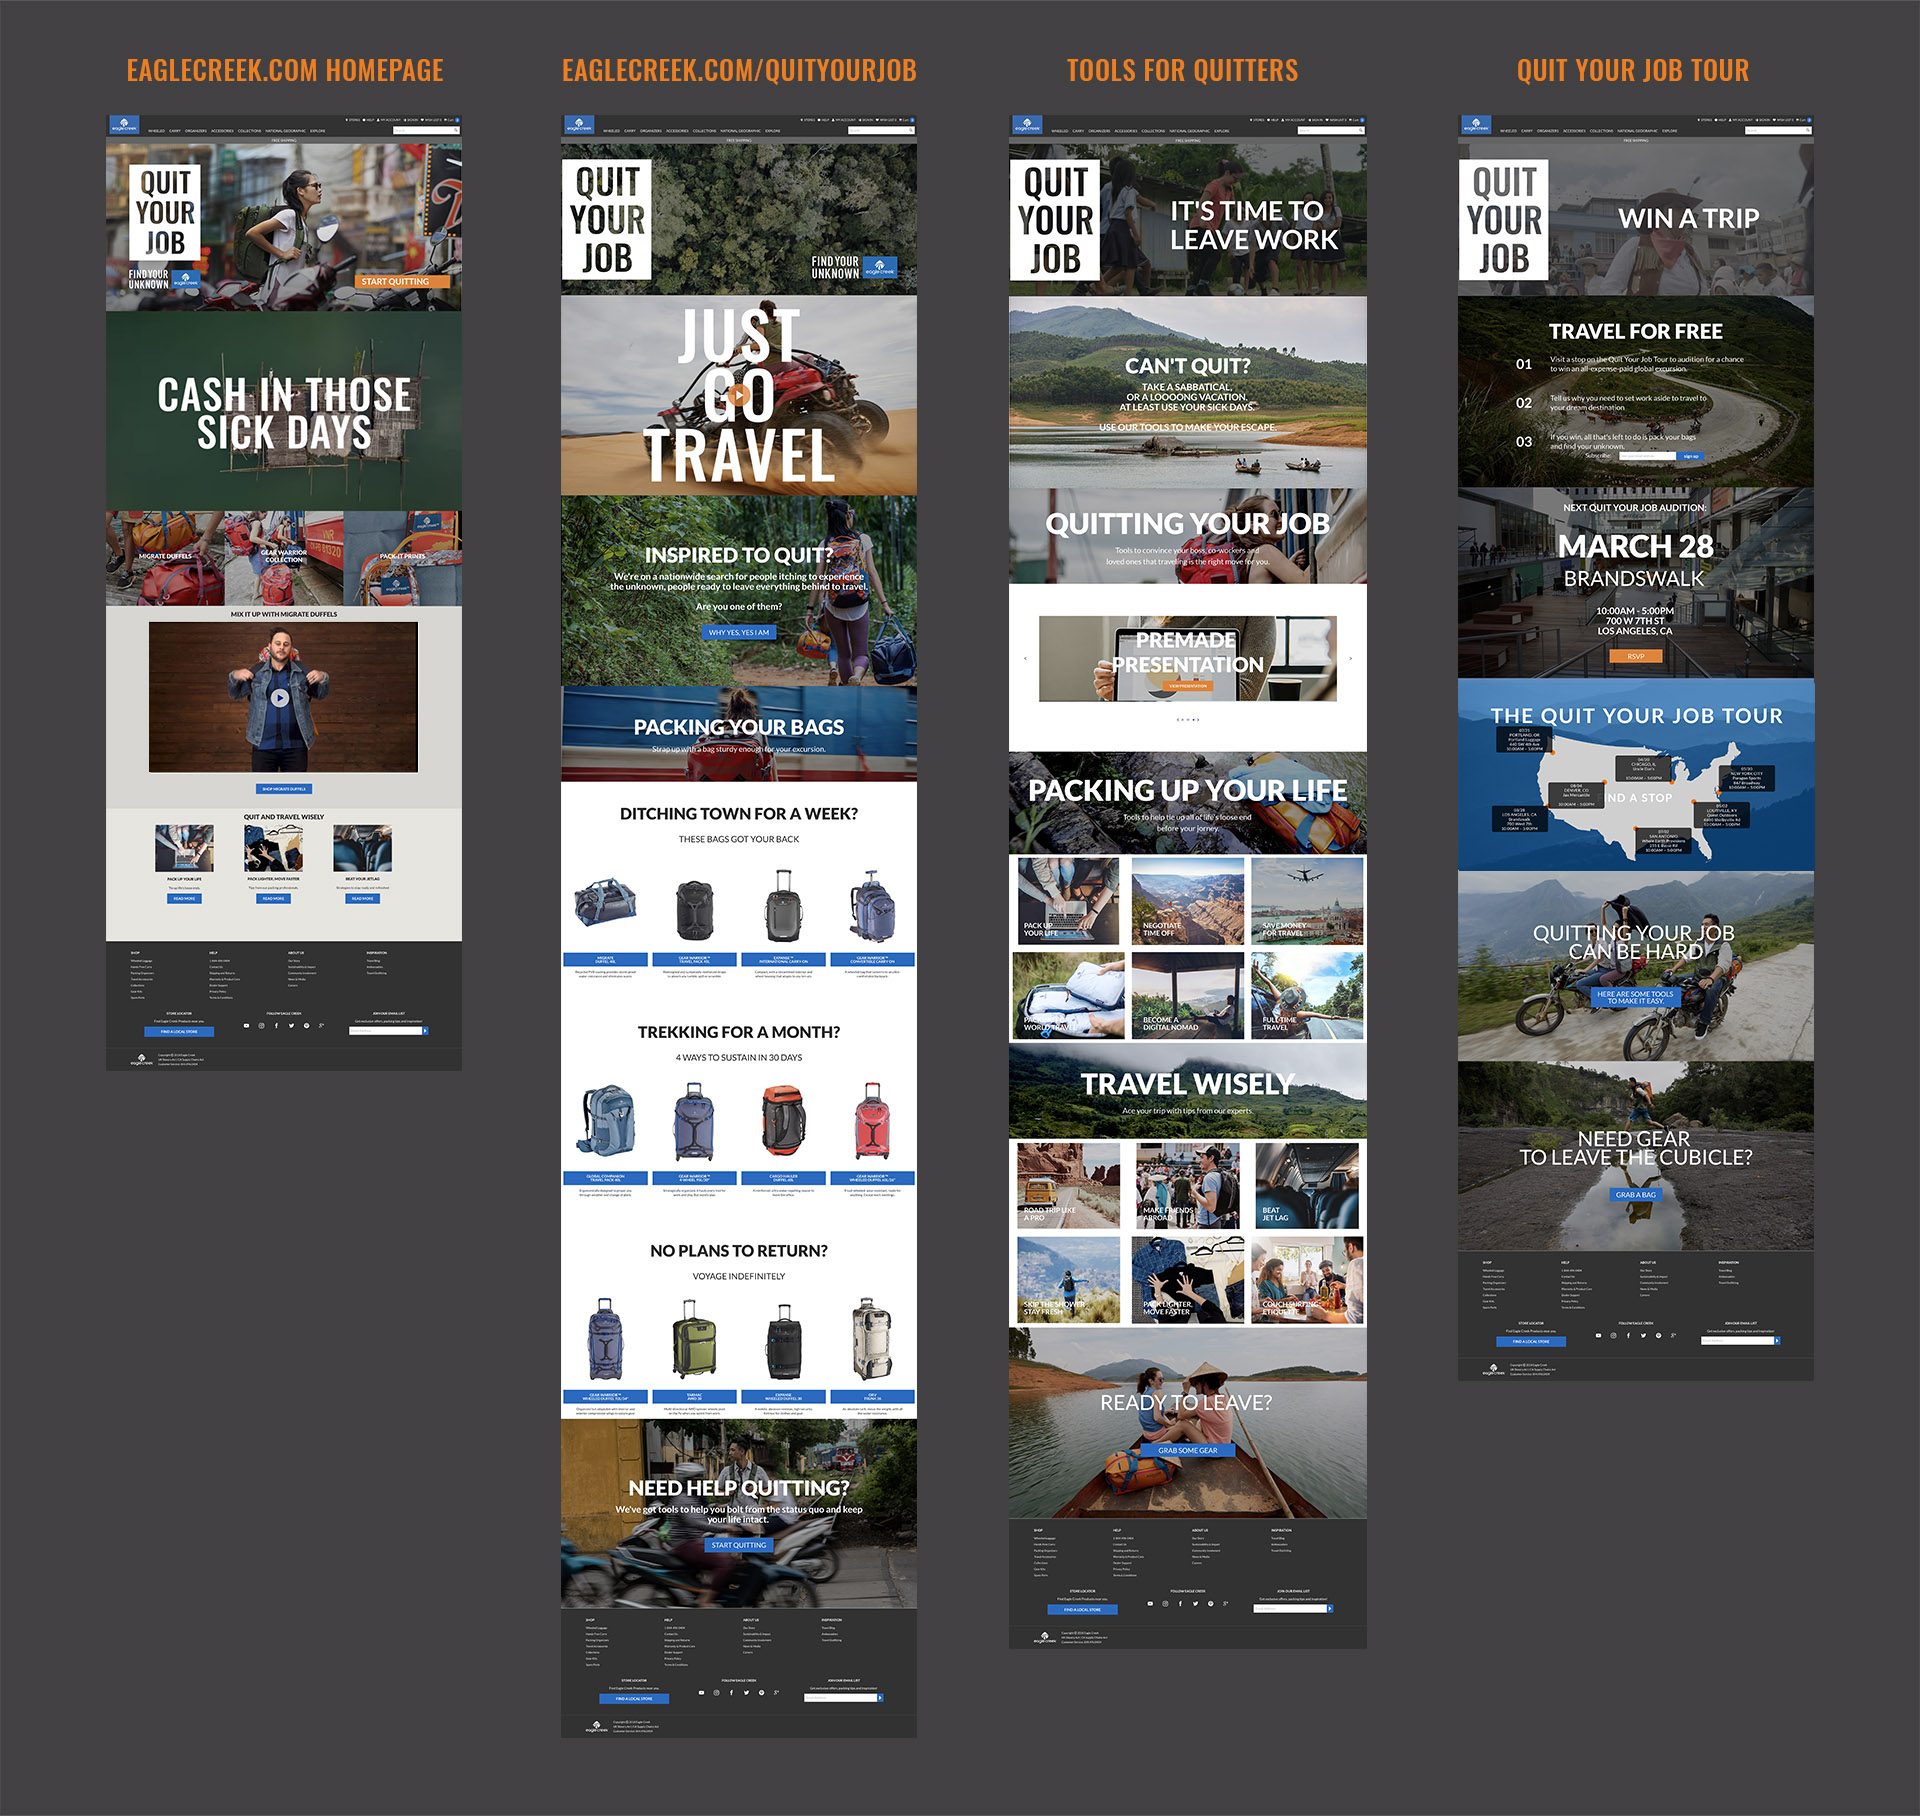 EagleCreek.com complete website design and content creation. Homepage and campaign landing page with two subpages of content and additional resources (you'll see more of those details below.